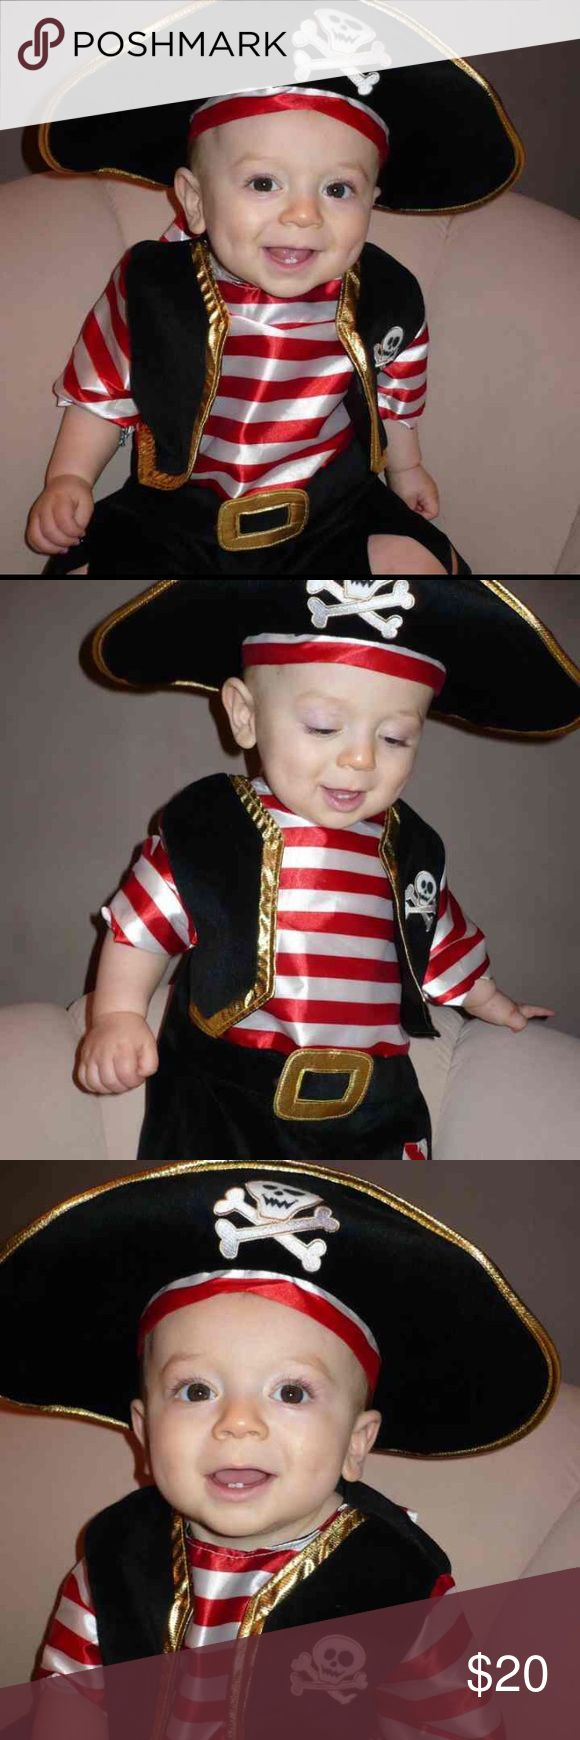 Pirate Halloween Costume 6-9 months New with tags  Size 6-9 months  Deluxe baby pirate Halloween costume  Amazing quality - high end materials/fabrics  We purchased two different sizes for fit. One piece that zips up the back.  Shirt, vest, pants and belt all attached.  Hat included. Costumes Halloween